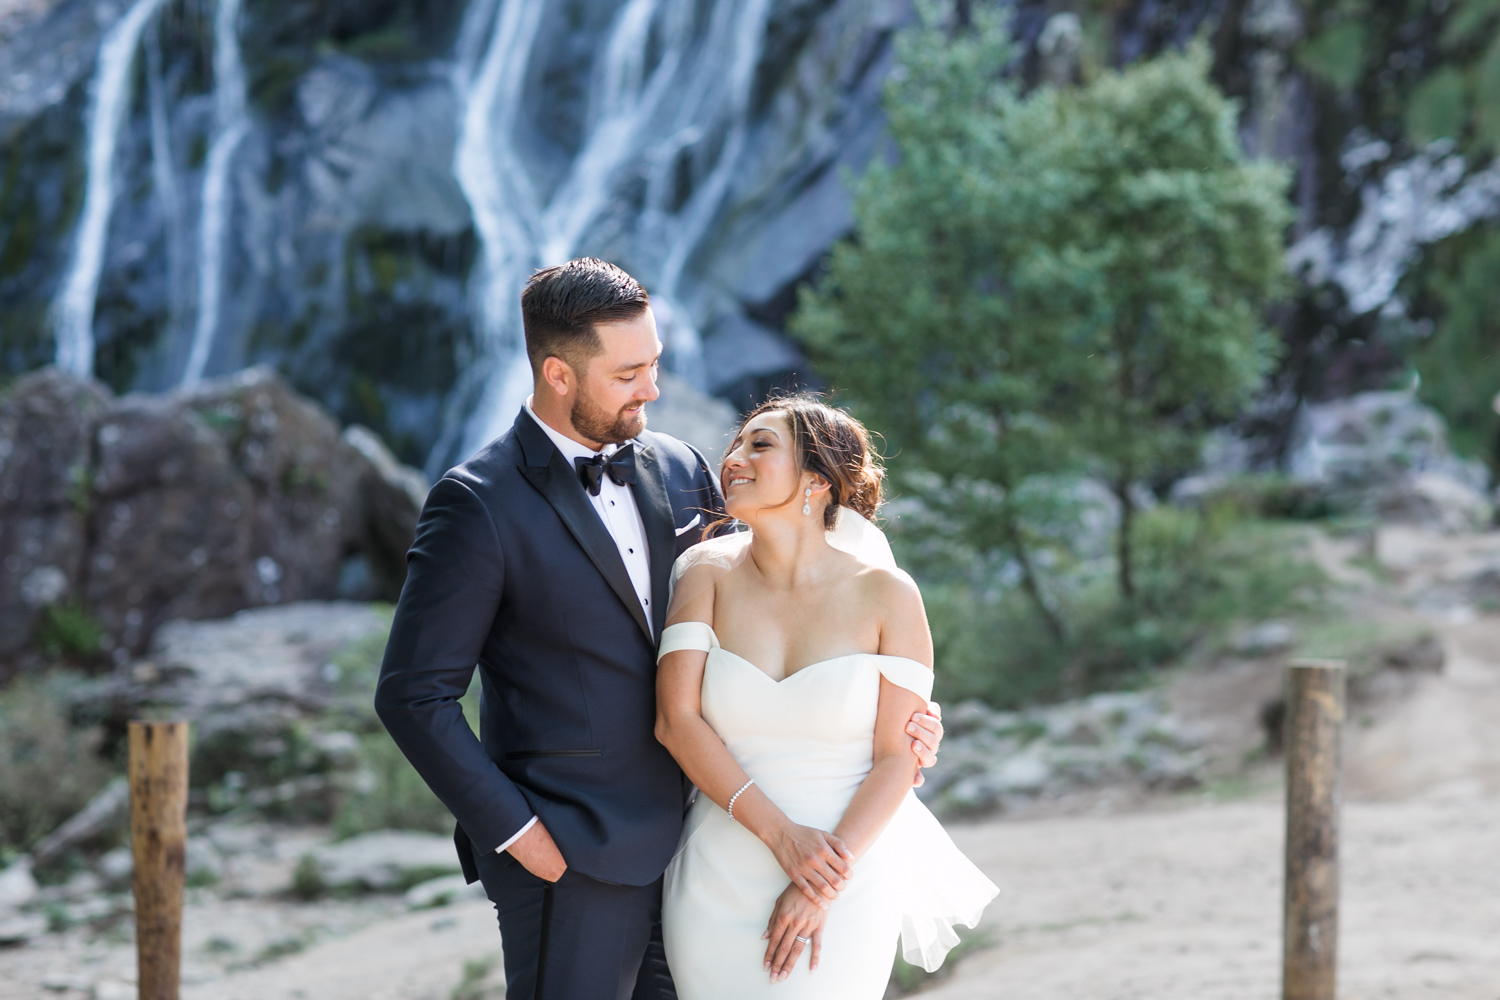 irish waterfall powerscourt in wicklow featuring bride and groom looking at each other wearing elegant black tie wedding gowns